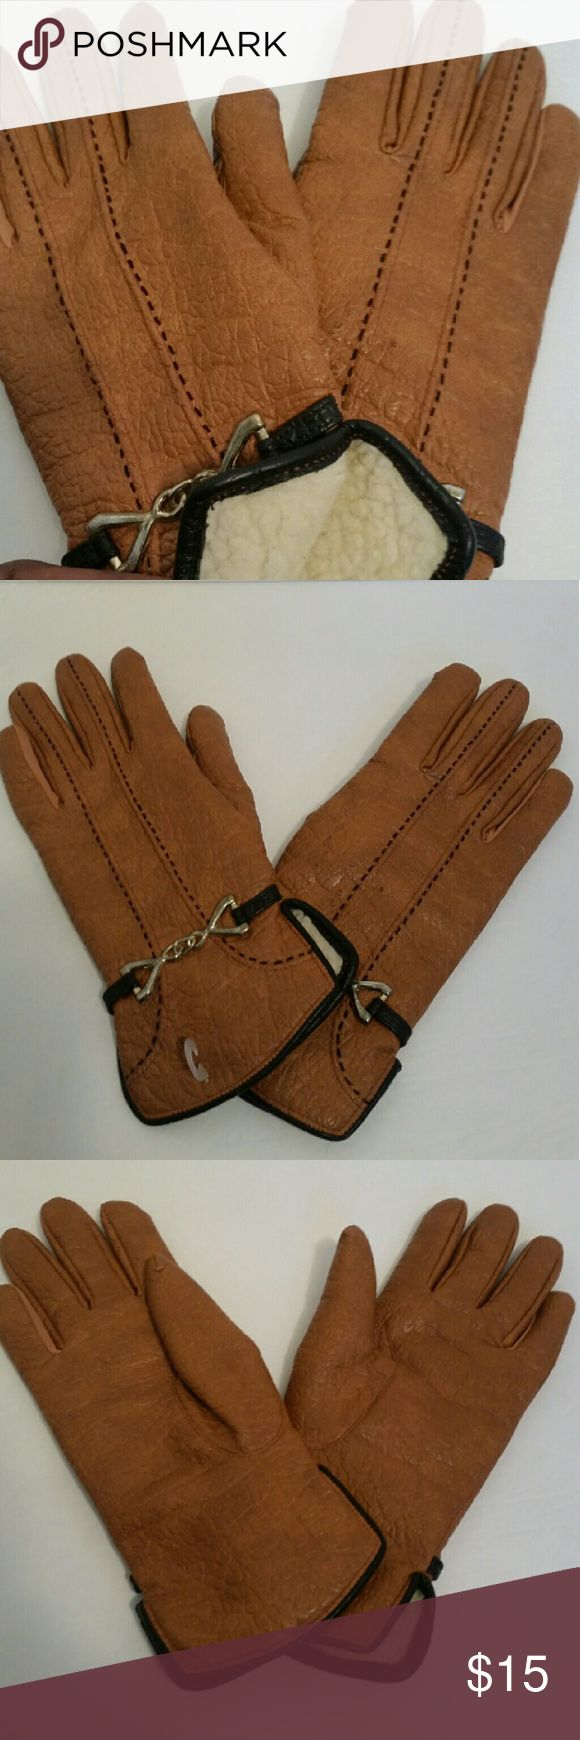 Nwot vintage Aris camel gloves w/black trim L Nwot vintage camel gloves w /black trim and fleece lining   Large  Good condition hardware is slightly discolored.. see pics  Material content tag states as follows: Vinyl with cotton backing Lining 60% acrylic 40%dacron Polyester w/100%backing  ❣pictures are part of the description  ❣No trades or off site transactions/communications ❣Open to reasonable offers ❣same day shipping Mon-Sat if purchased before 2:30pm central time  ❣4.9 rating…